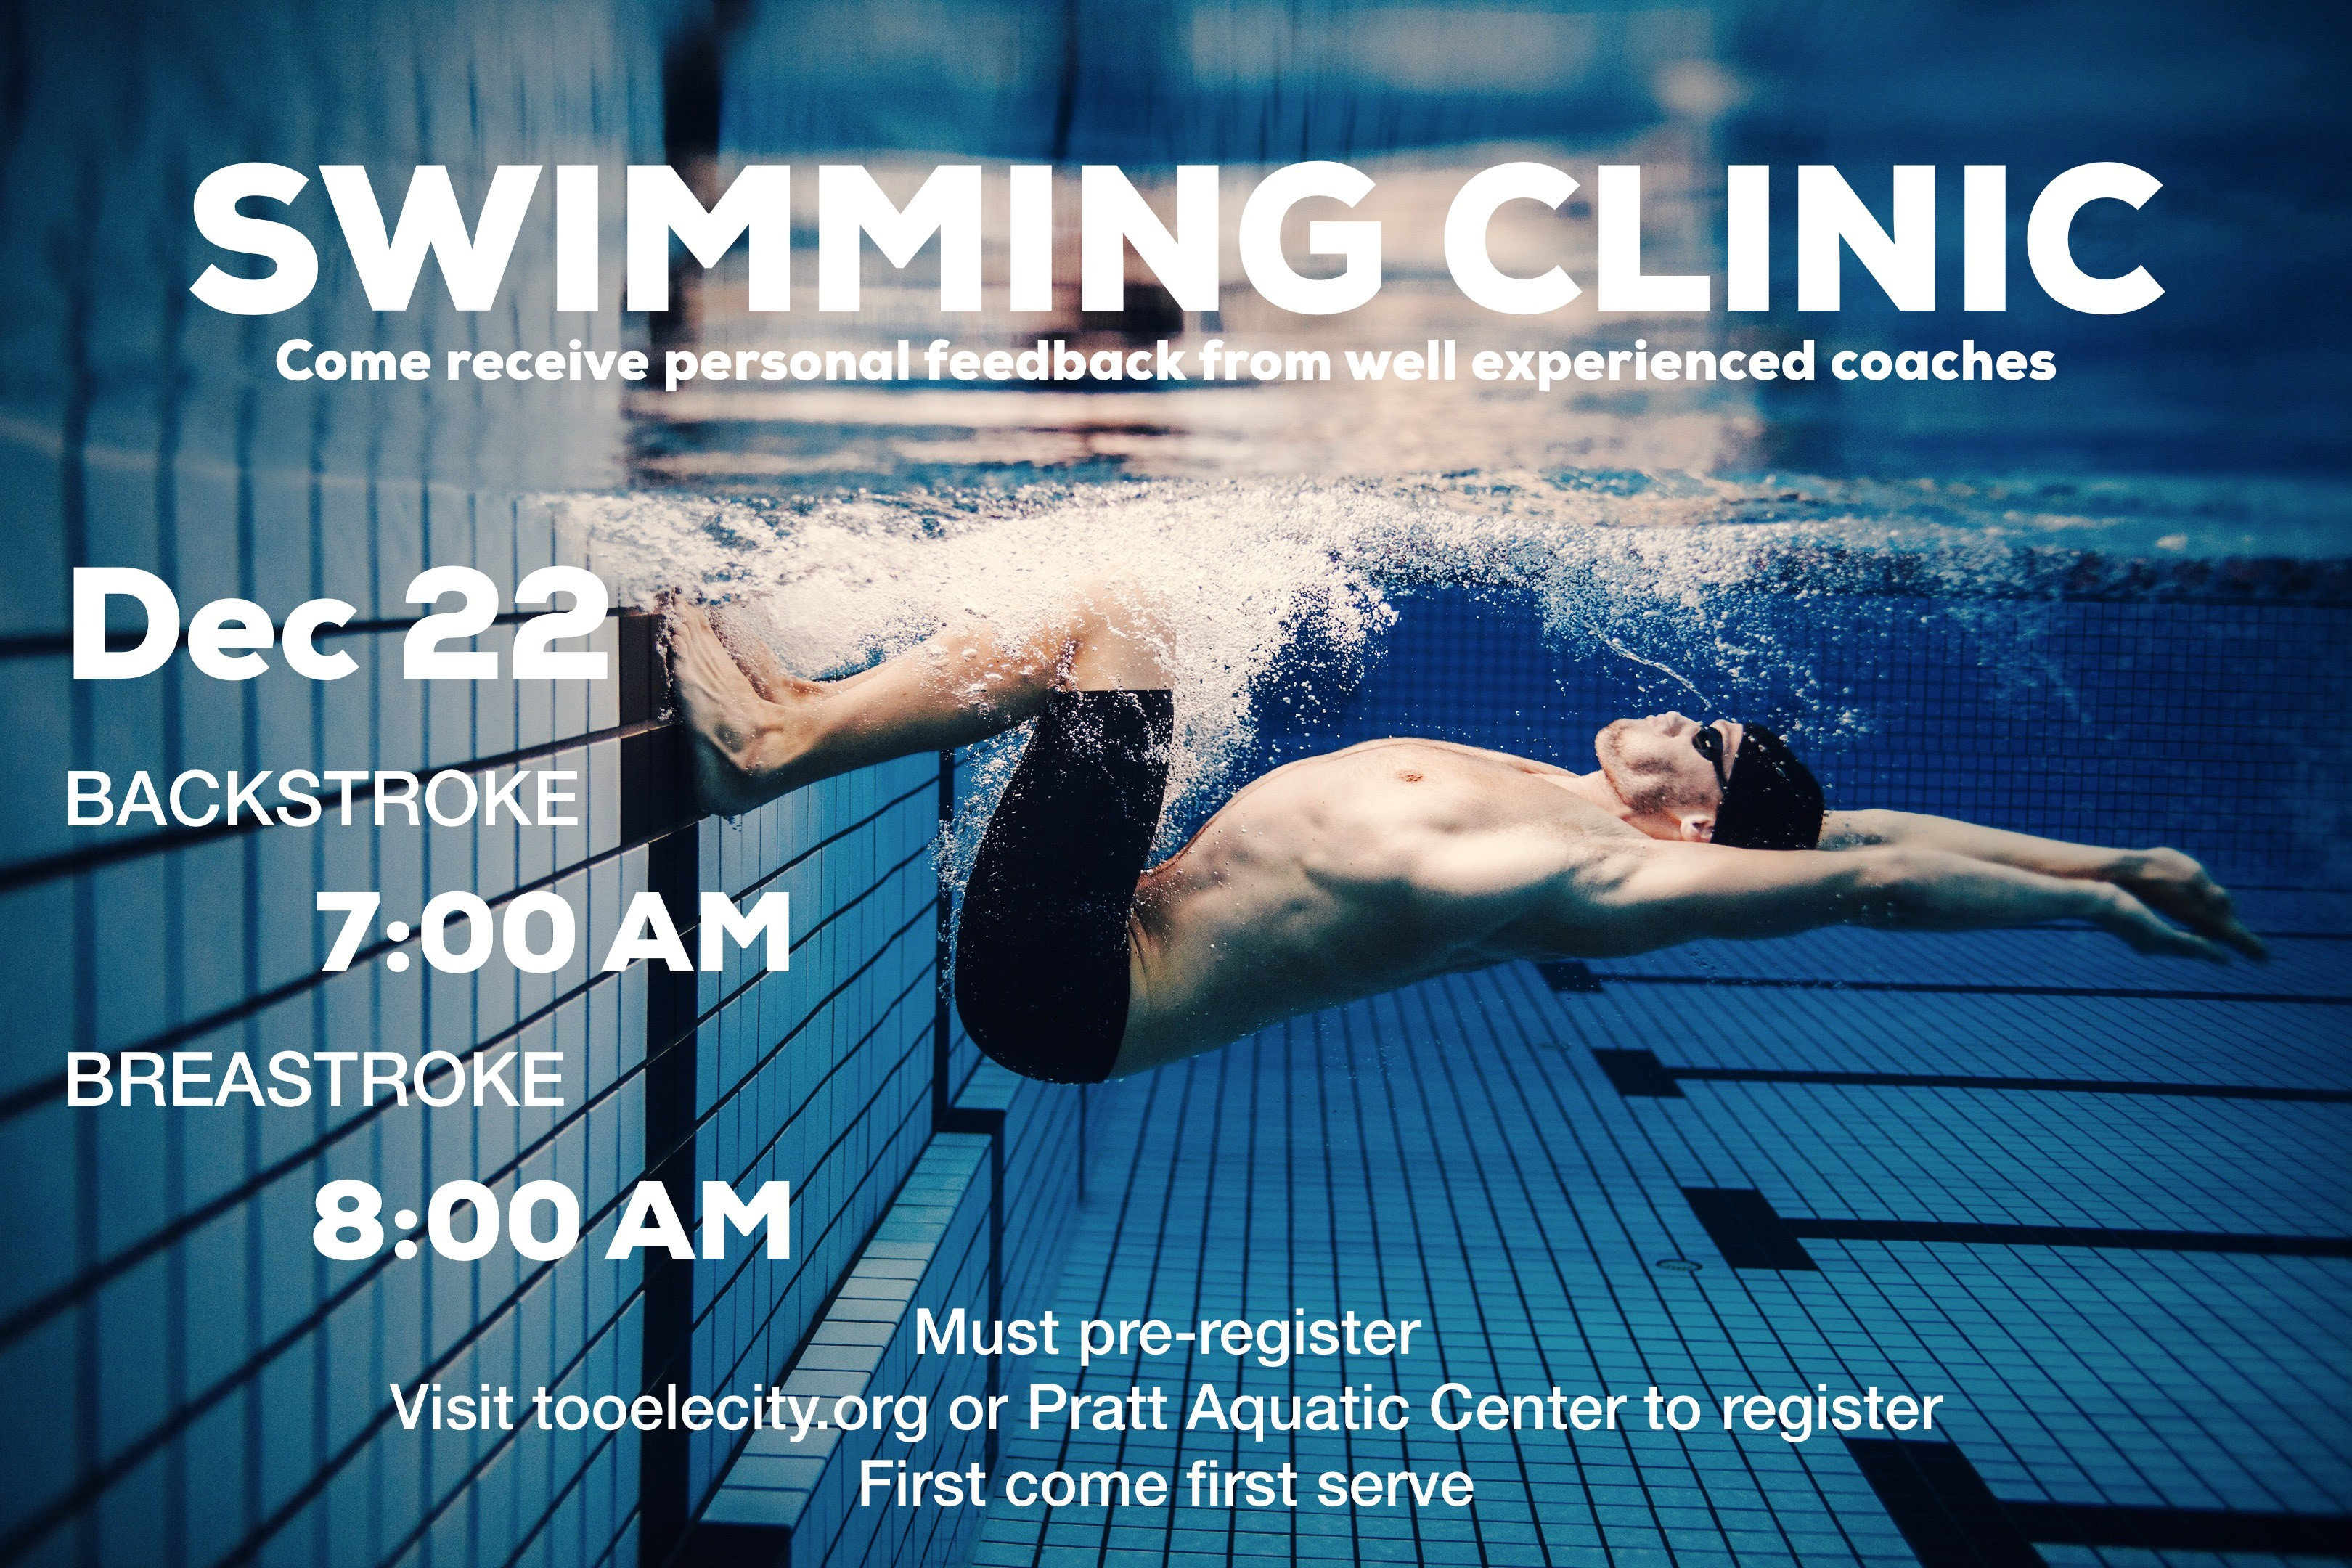 Swimming Clinic - Backstroke @ Pratt Aquatic Center | Tooele | Utah | United States